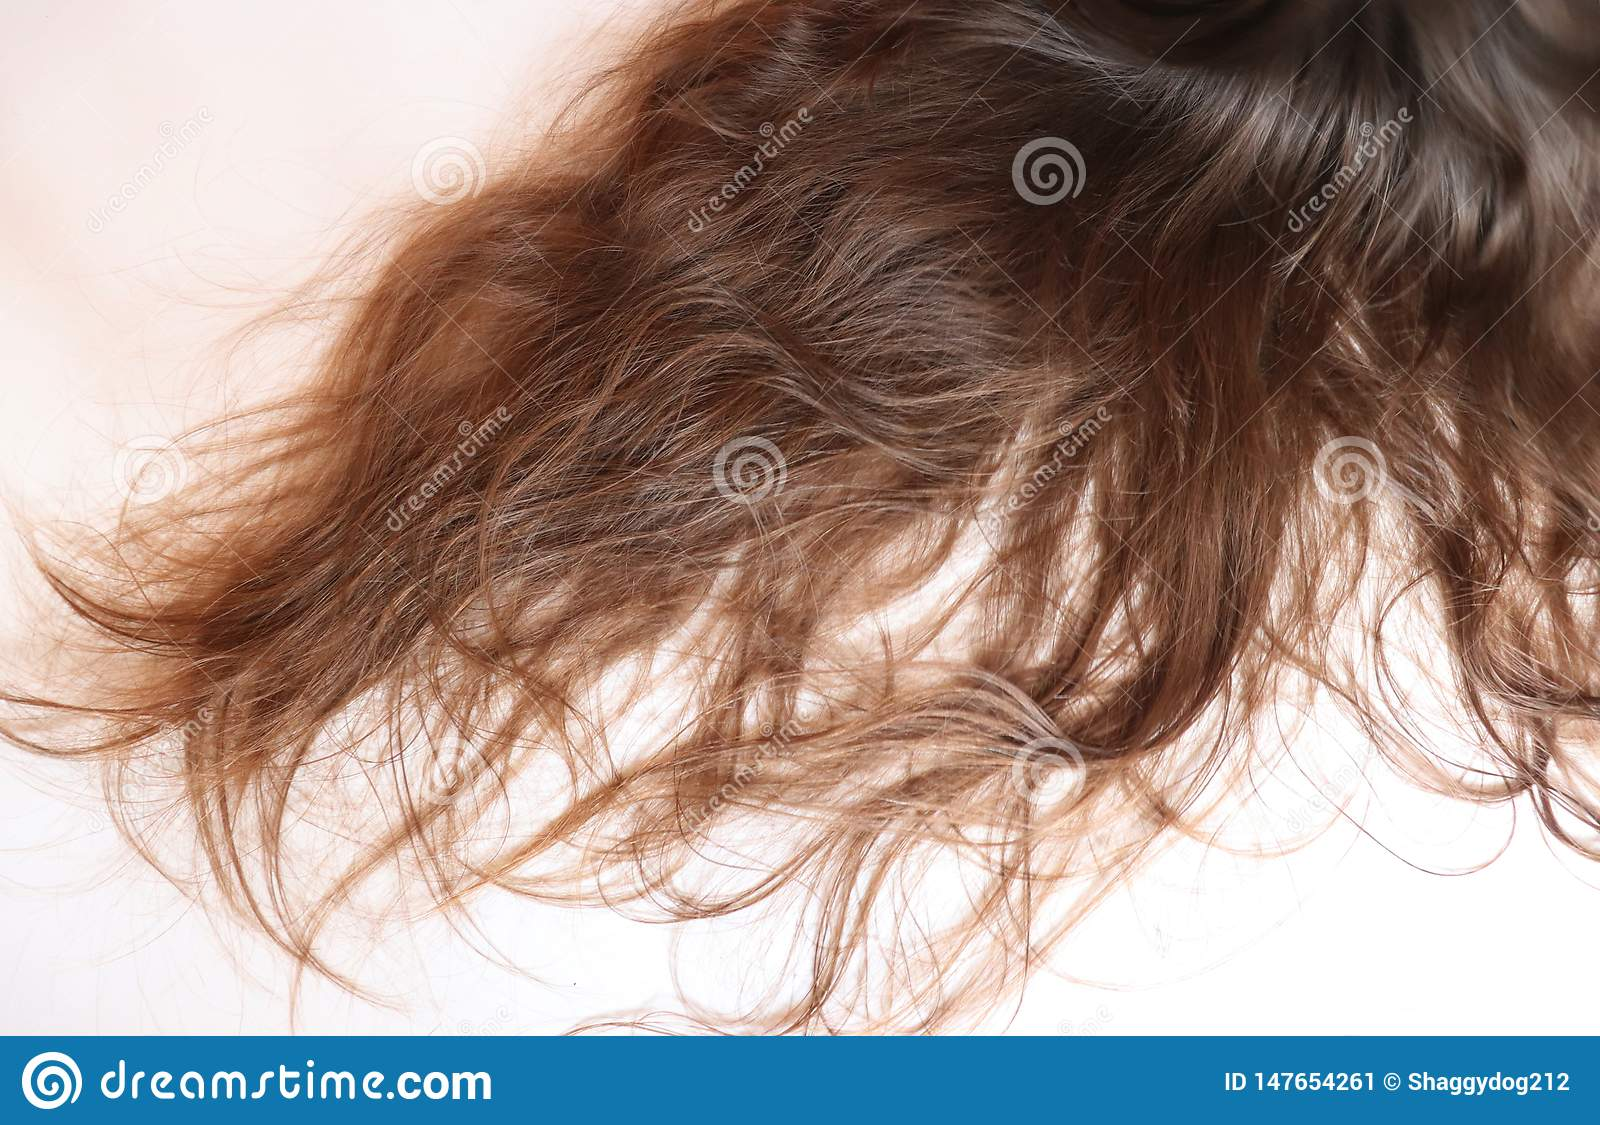 Long wavy brown hair on a teenage girl